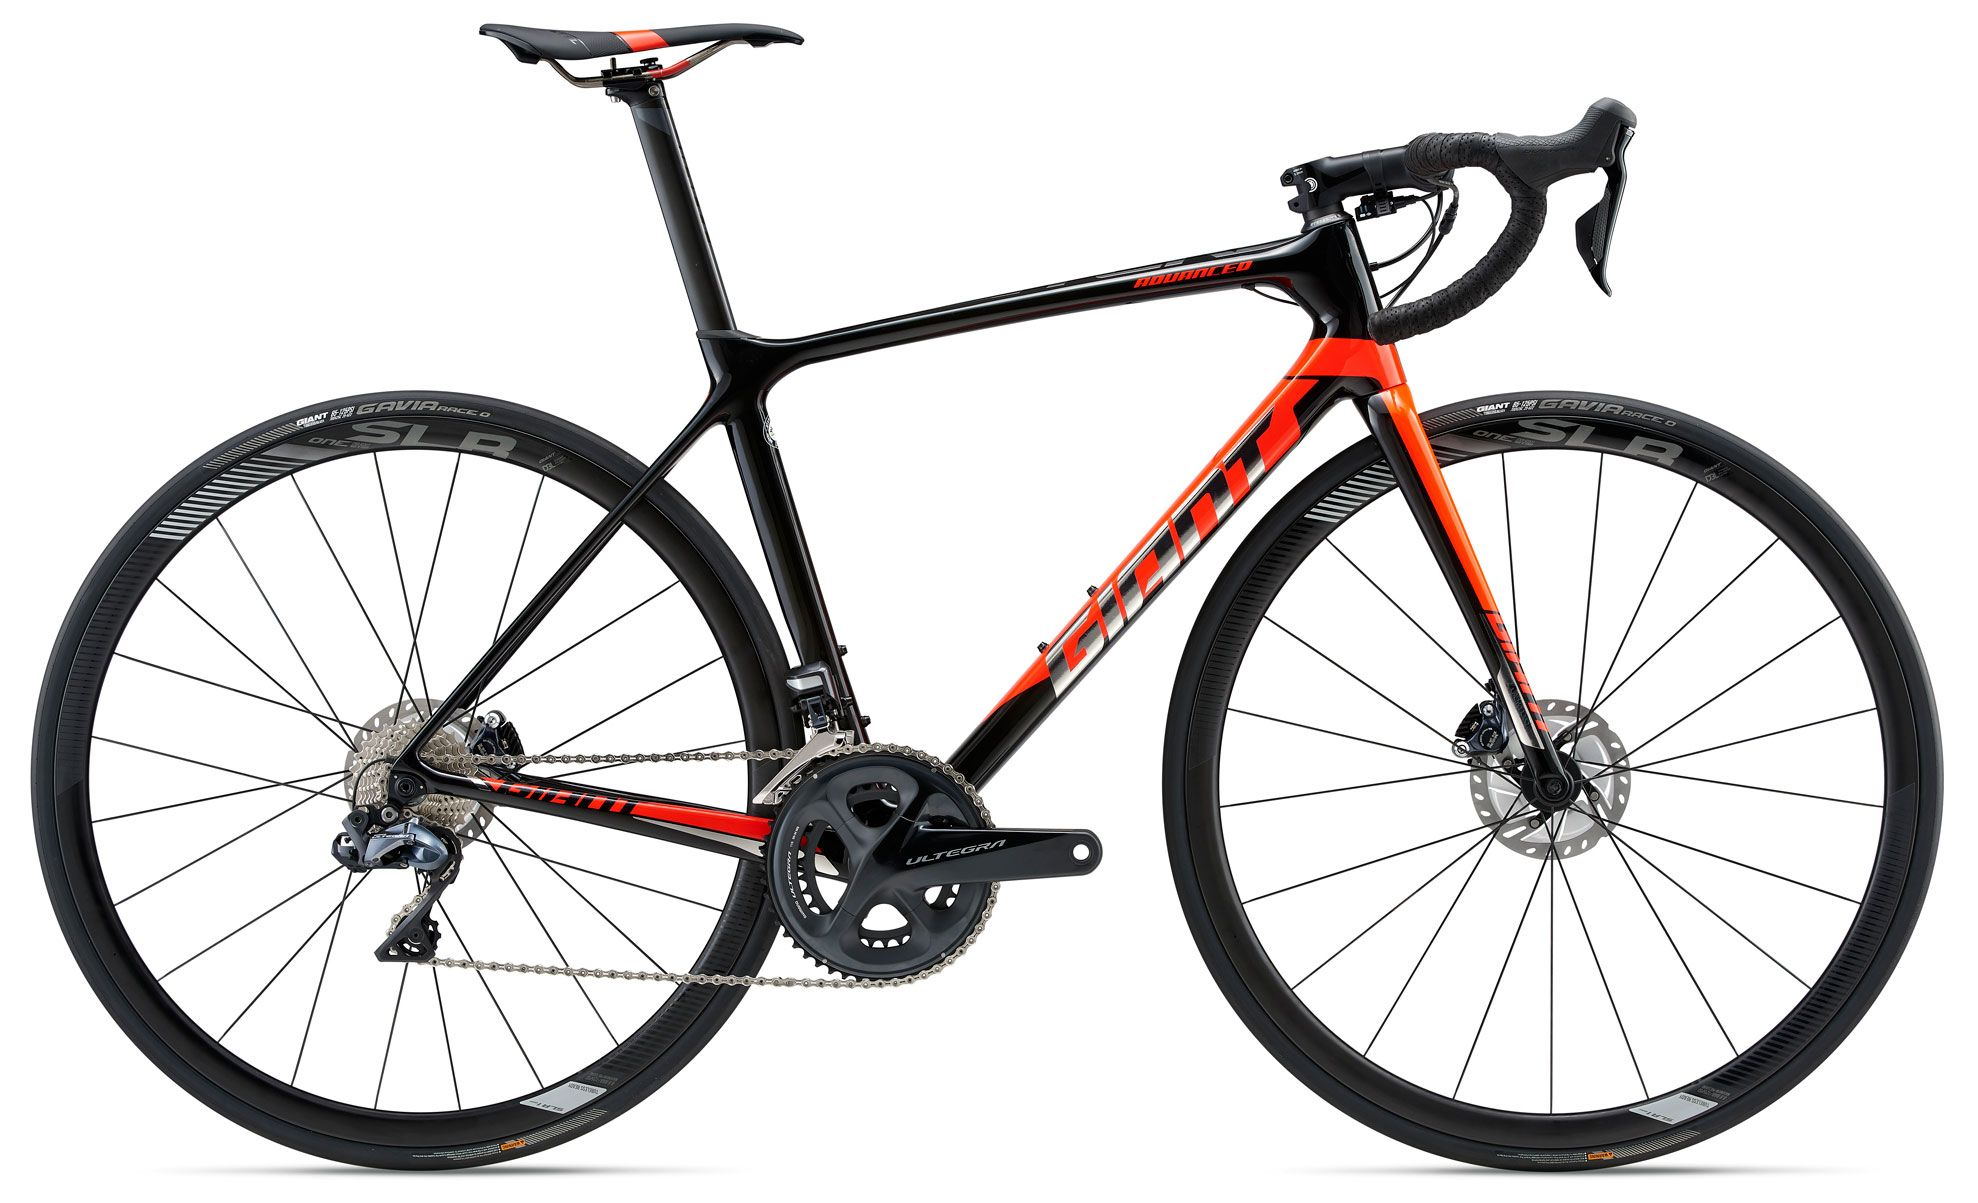 Велосипед Giant TCR Advanced Pro 0 Disc 2018 велосипед giant xtc advanced 27 5 2 2014